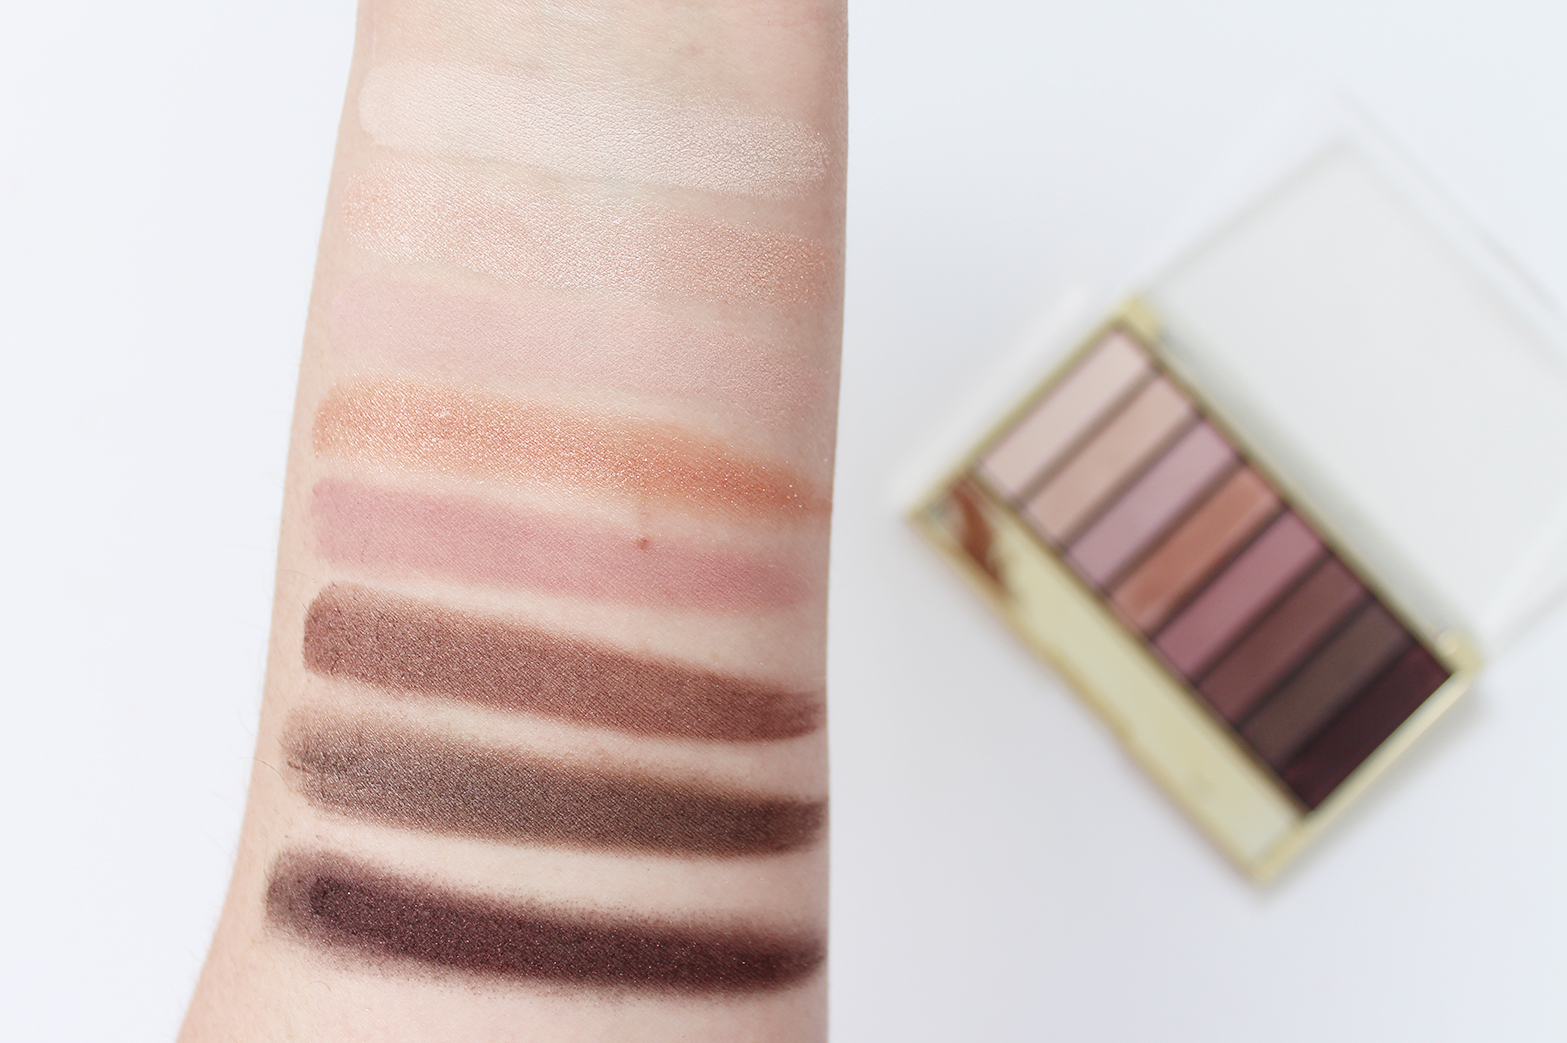 MAX FACTOR | Masterpiece Nude Palette Contouring Eye Shadows in 03 Rose Nudes - Review + Swatches - CassandraMyee